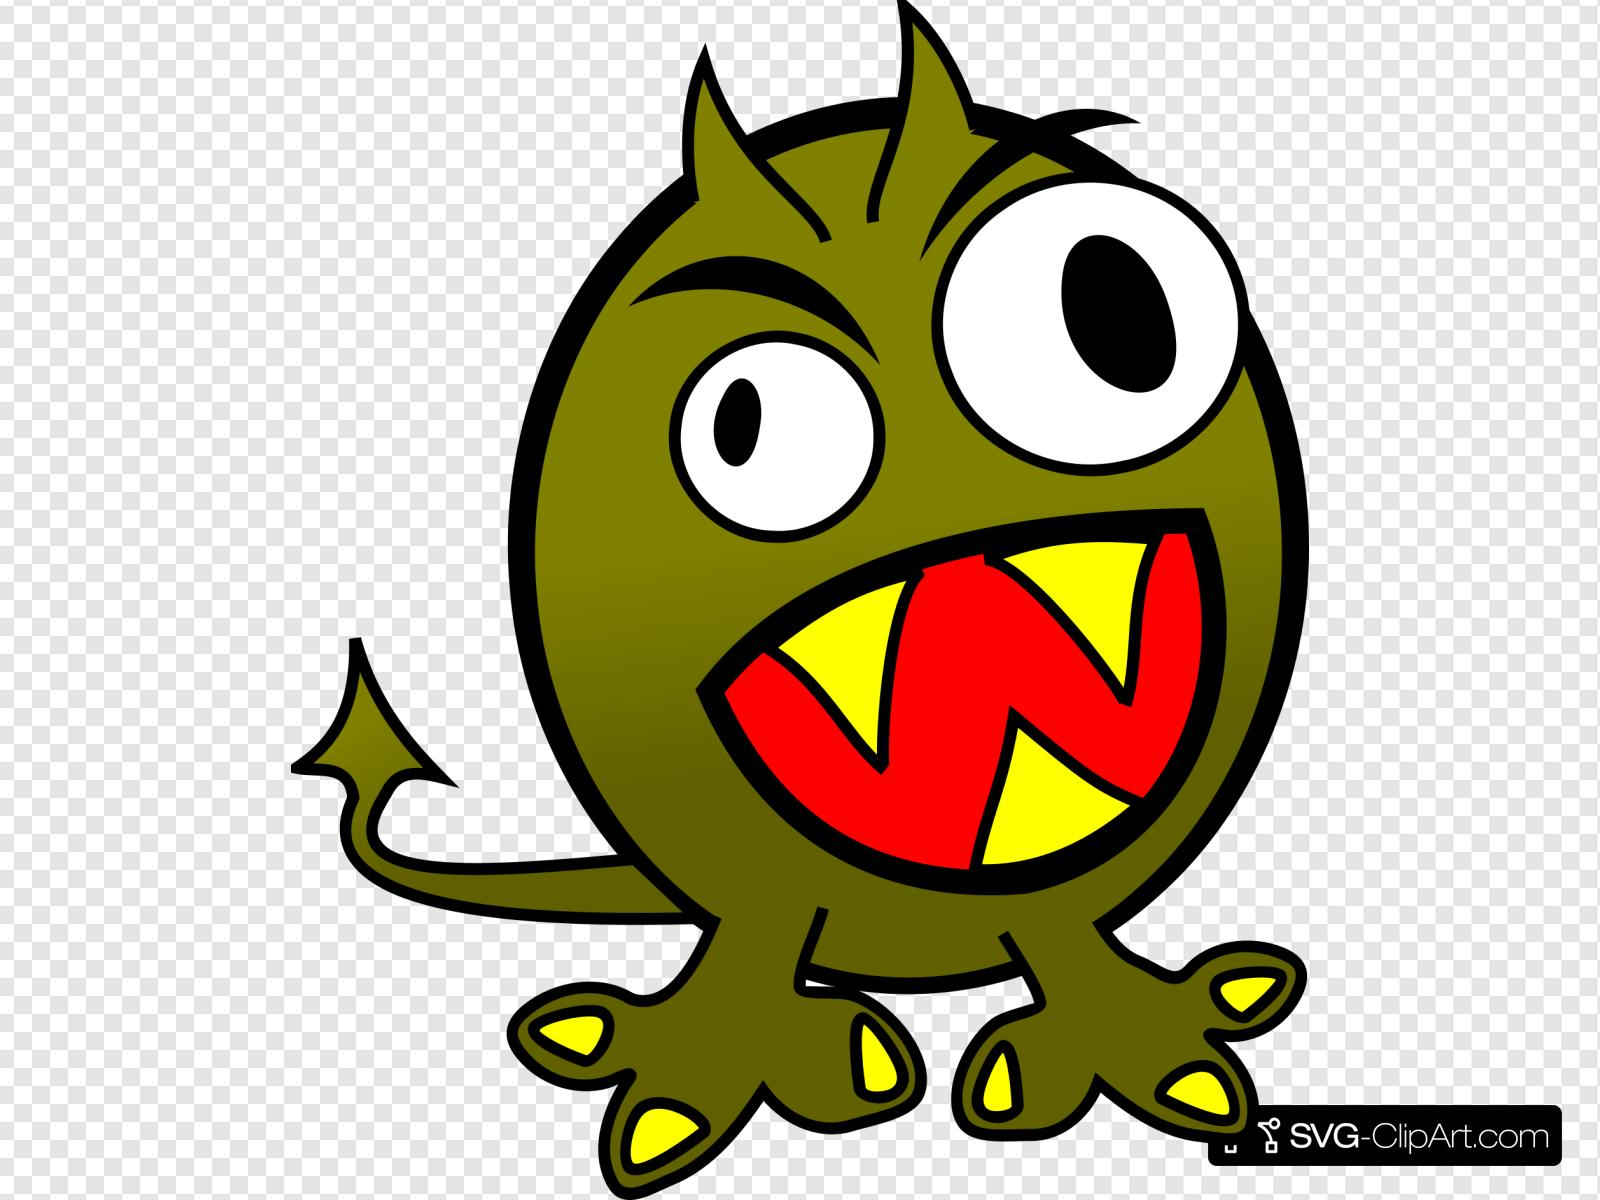 Small Funny Angry Monster Clip art, Icon and SVG.